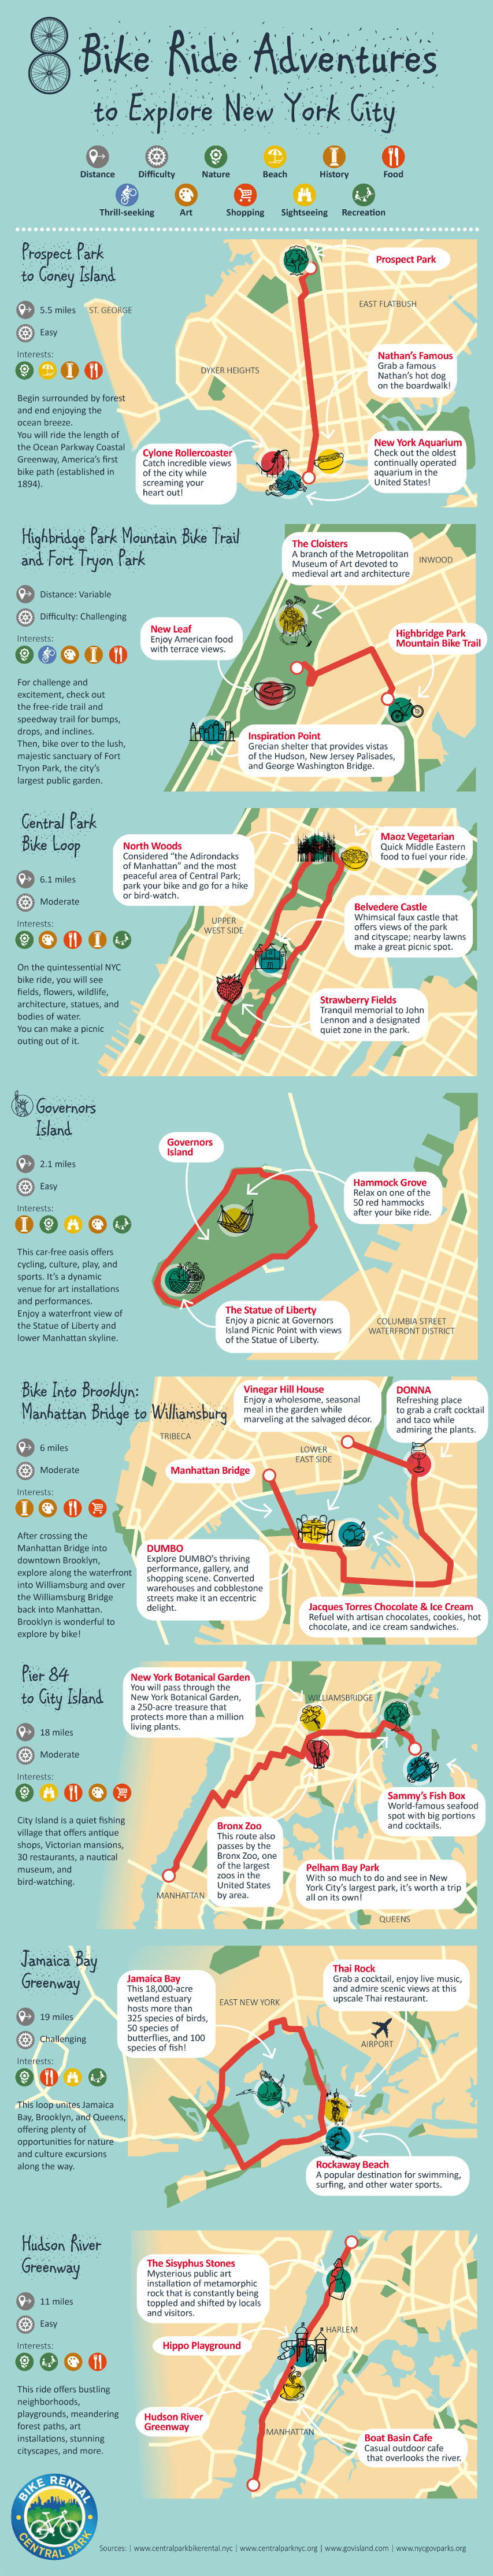 8 Bike Ride Adventures to Explore New York City #infographic